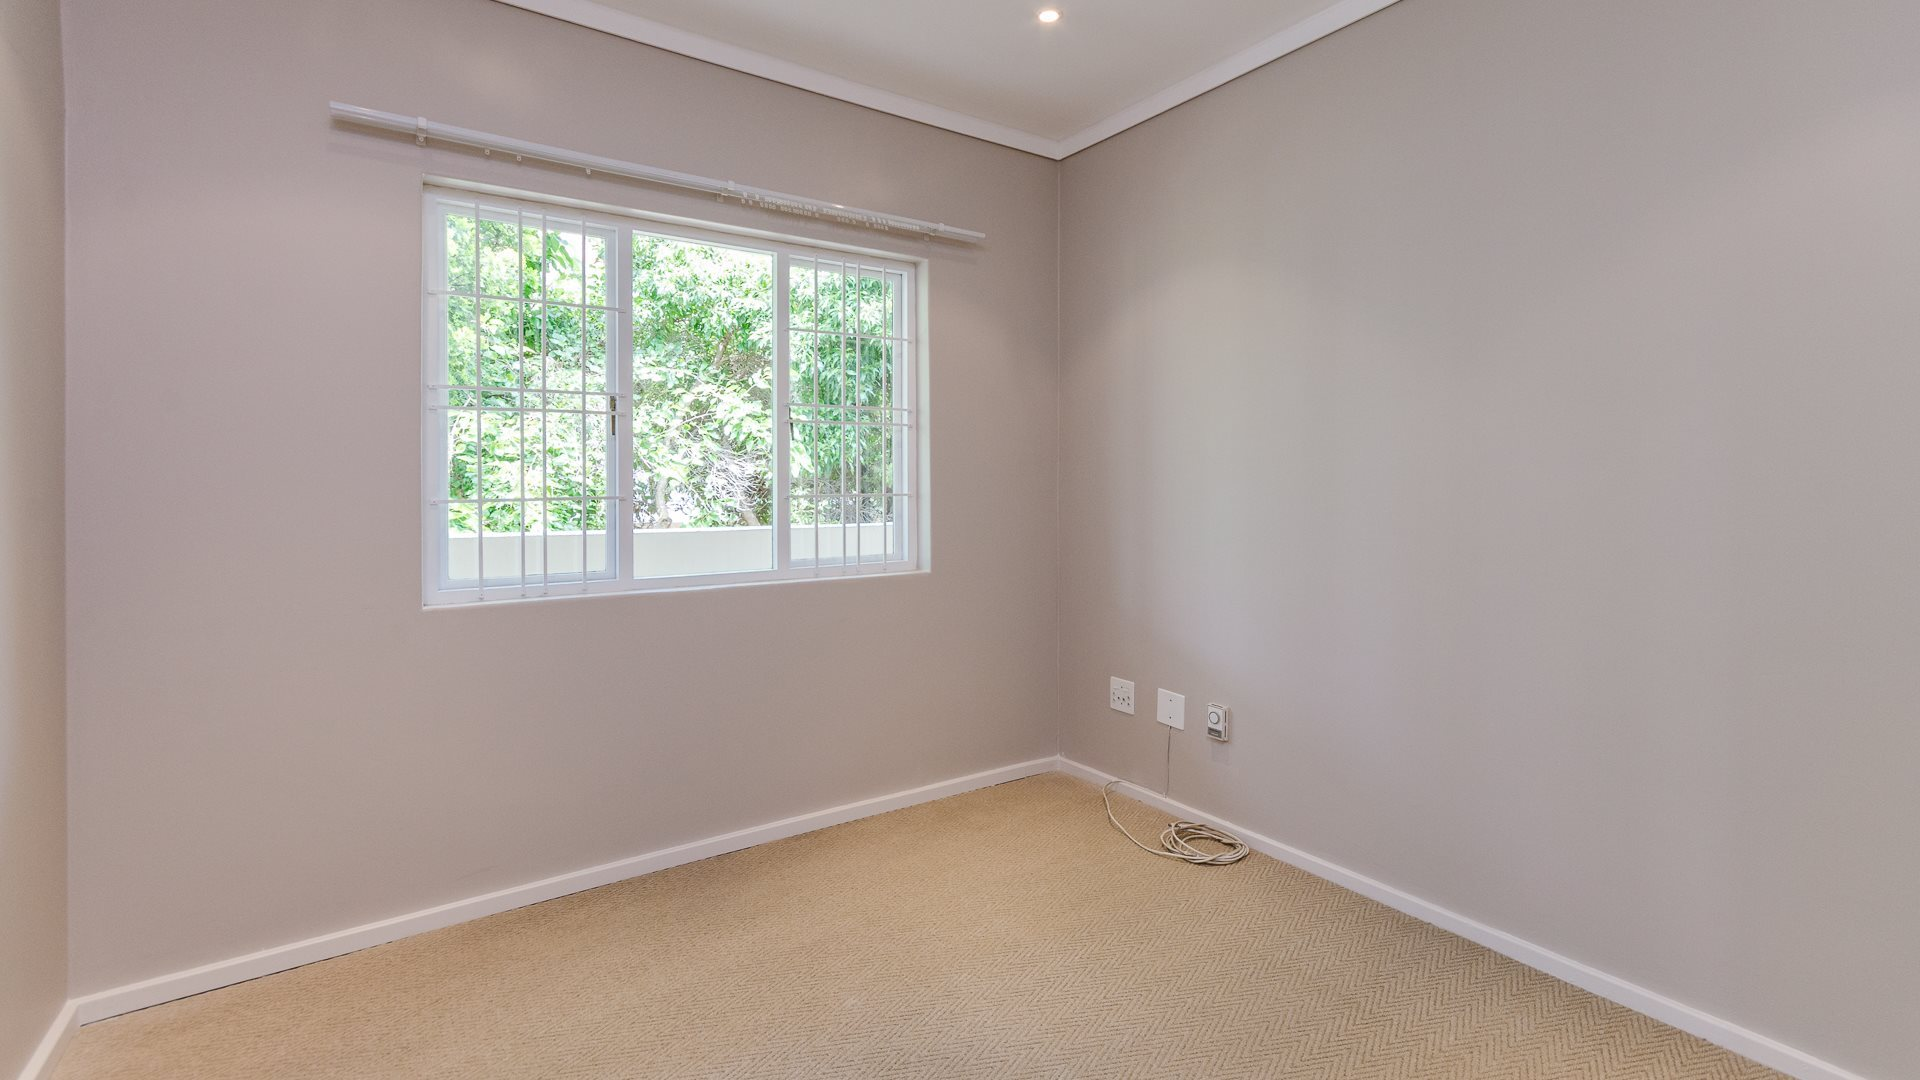 Morningside property for sale. Ref No: 13561793. Picture no 11